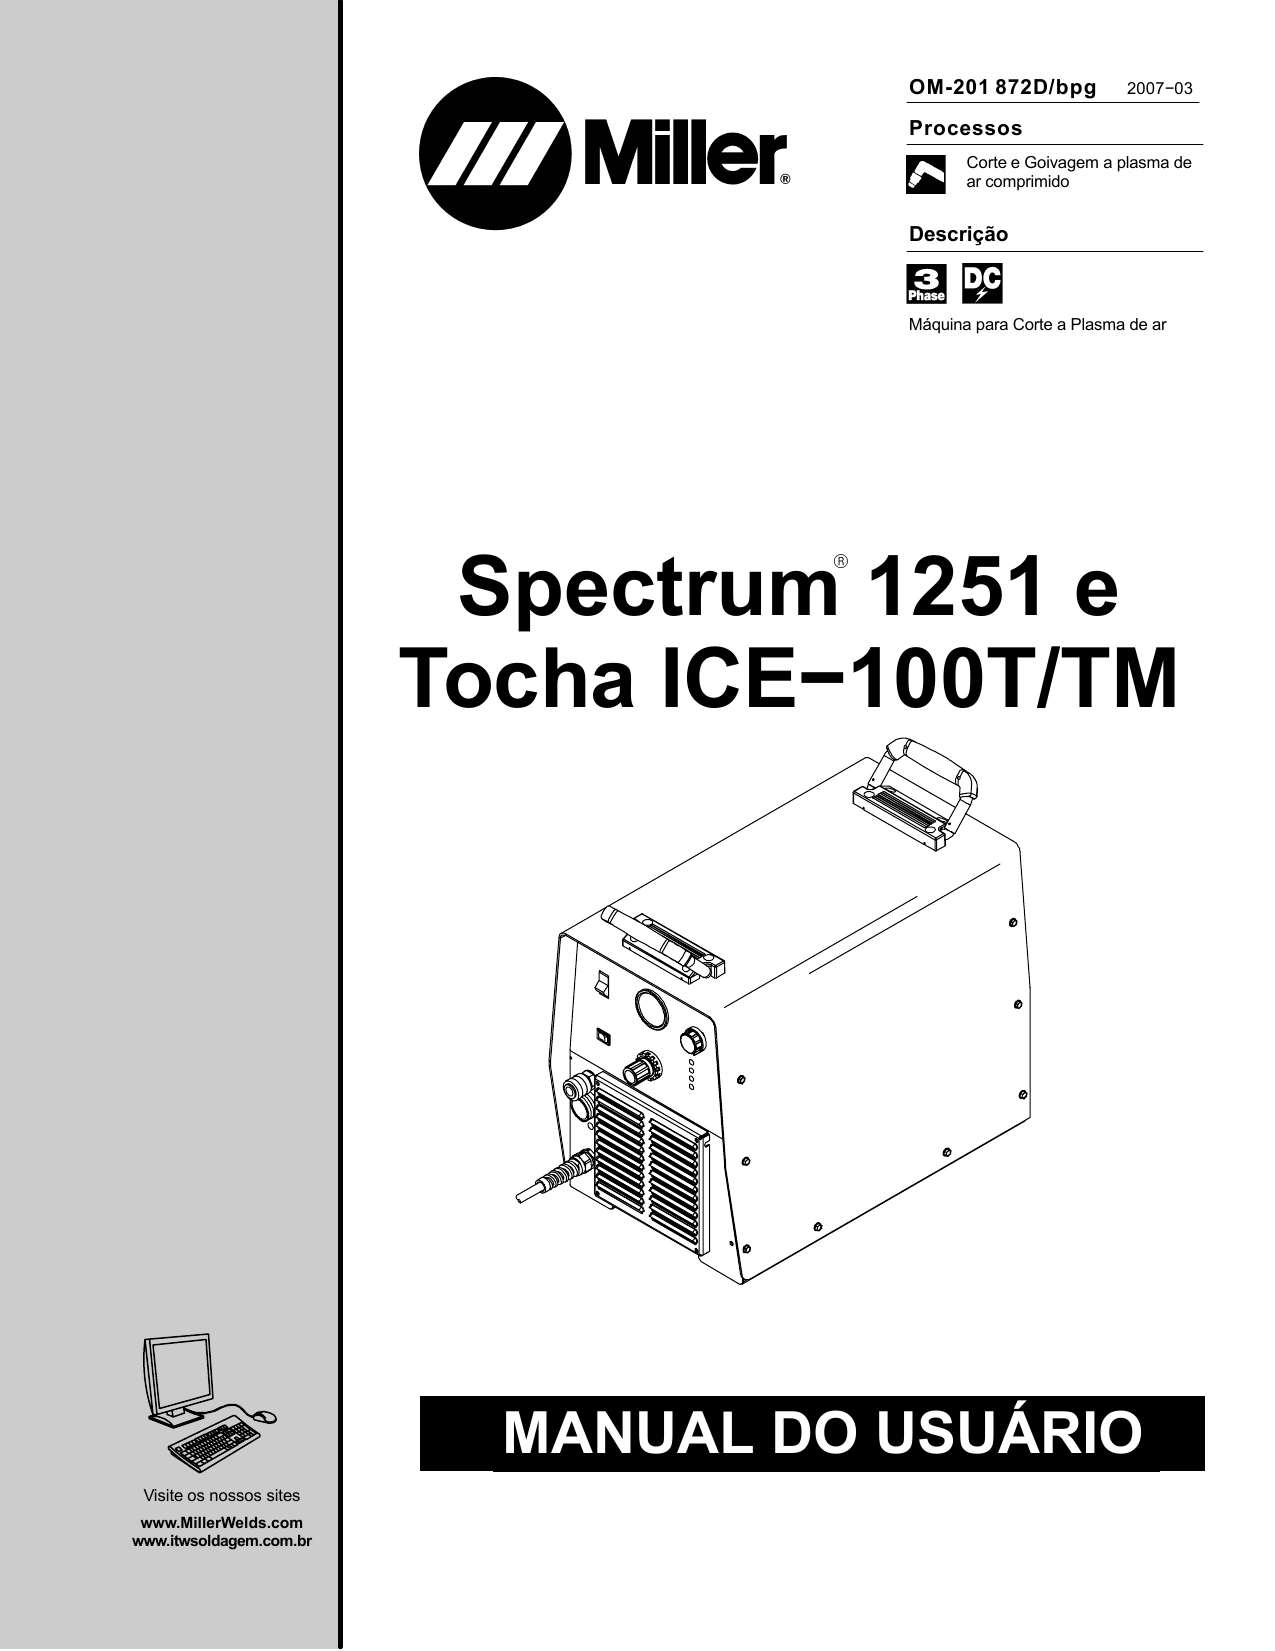 Miller SPECTRUM 1251 AND ICE-100T/TM TORCH Manual do